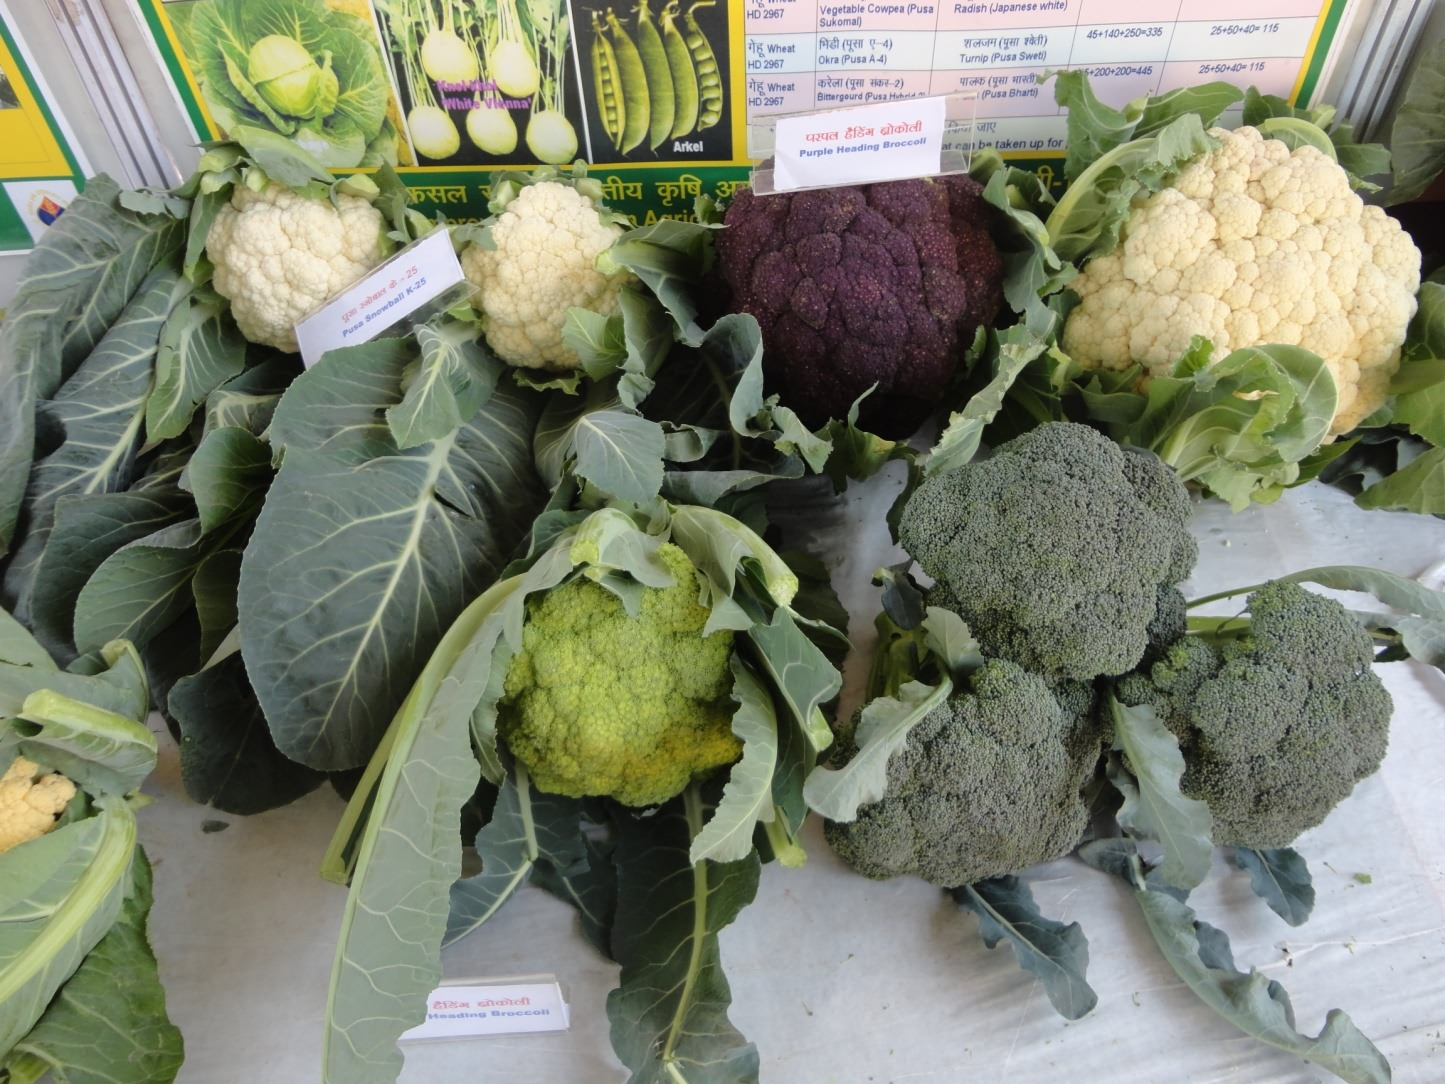 cauliflower and brocceli vegetables